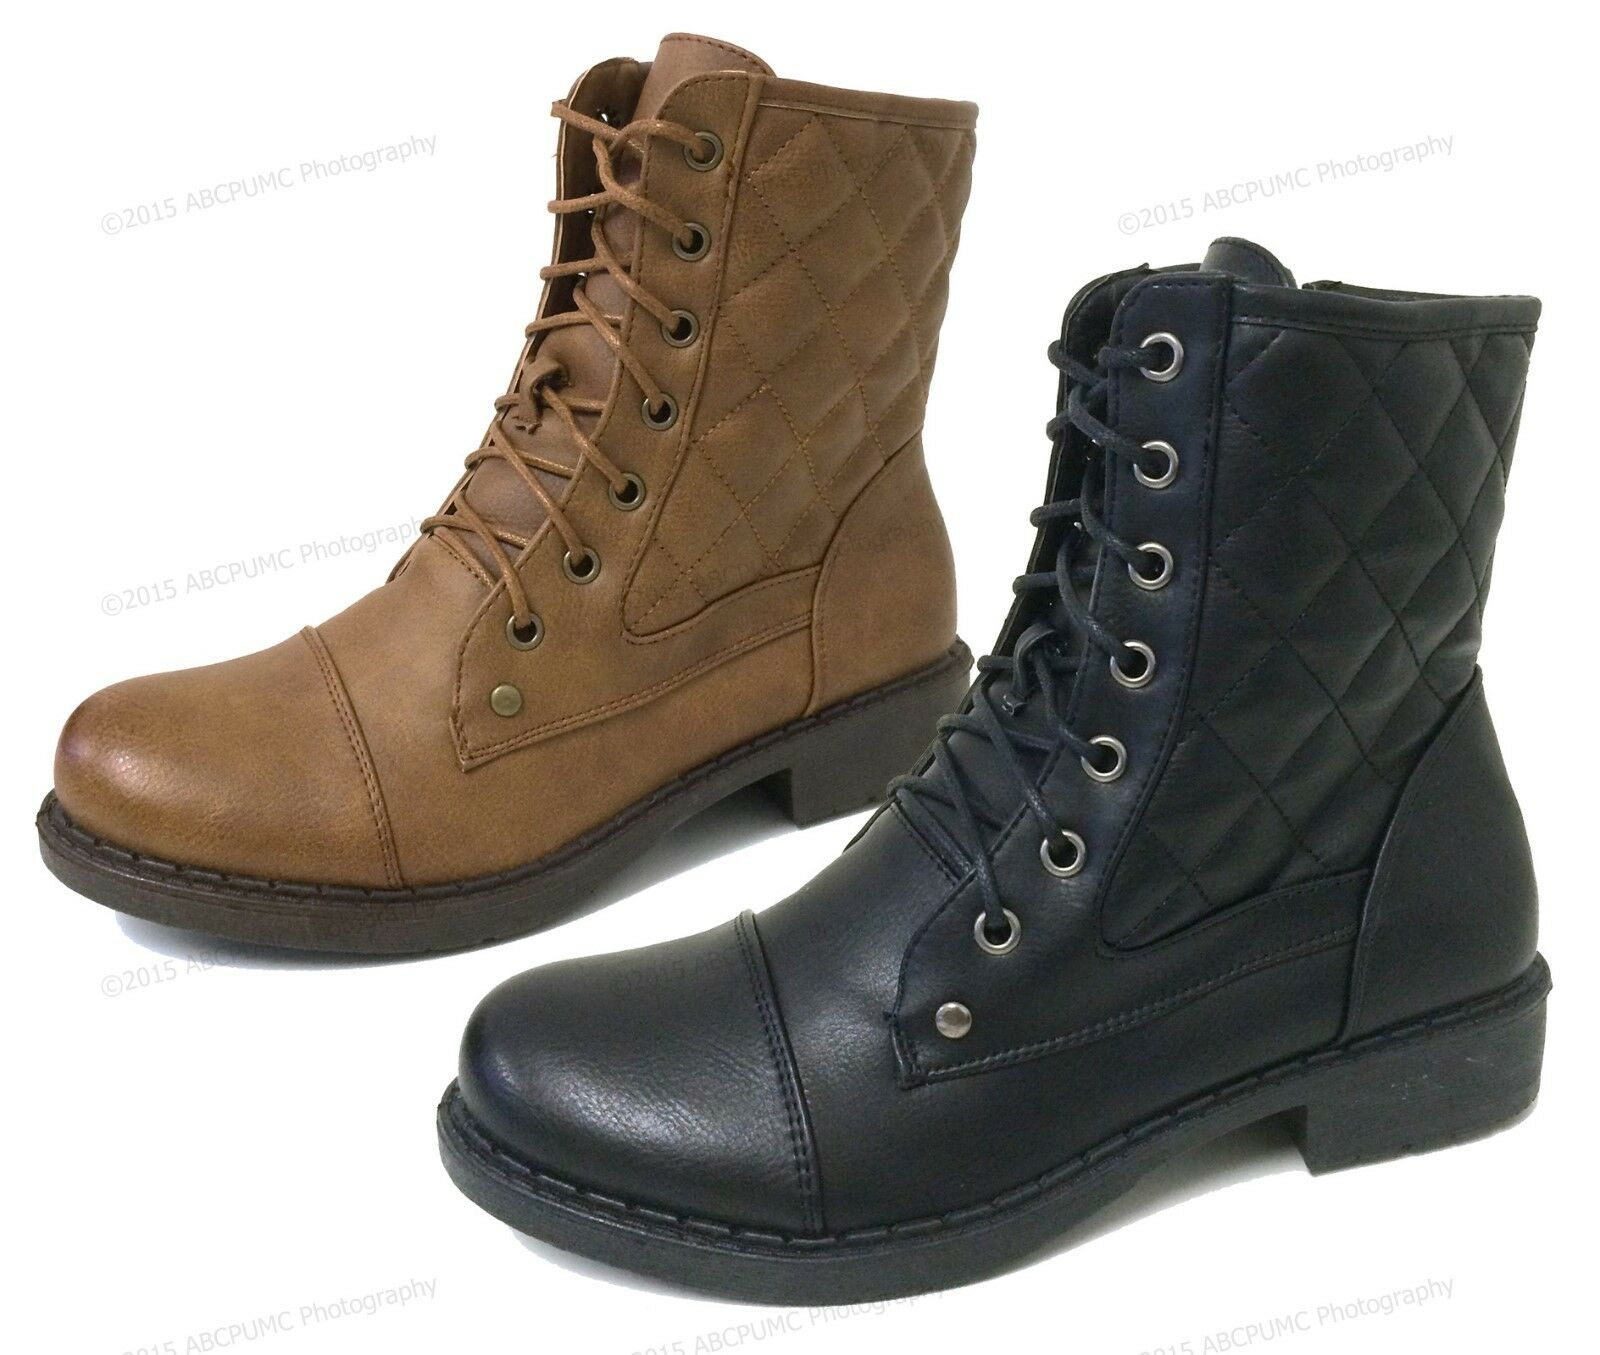 Womens Military Boots Lace Up Faux Leather Quilted Fur Lined Zipper Combat Sizes